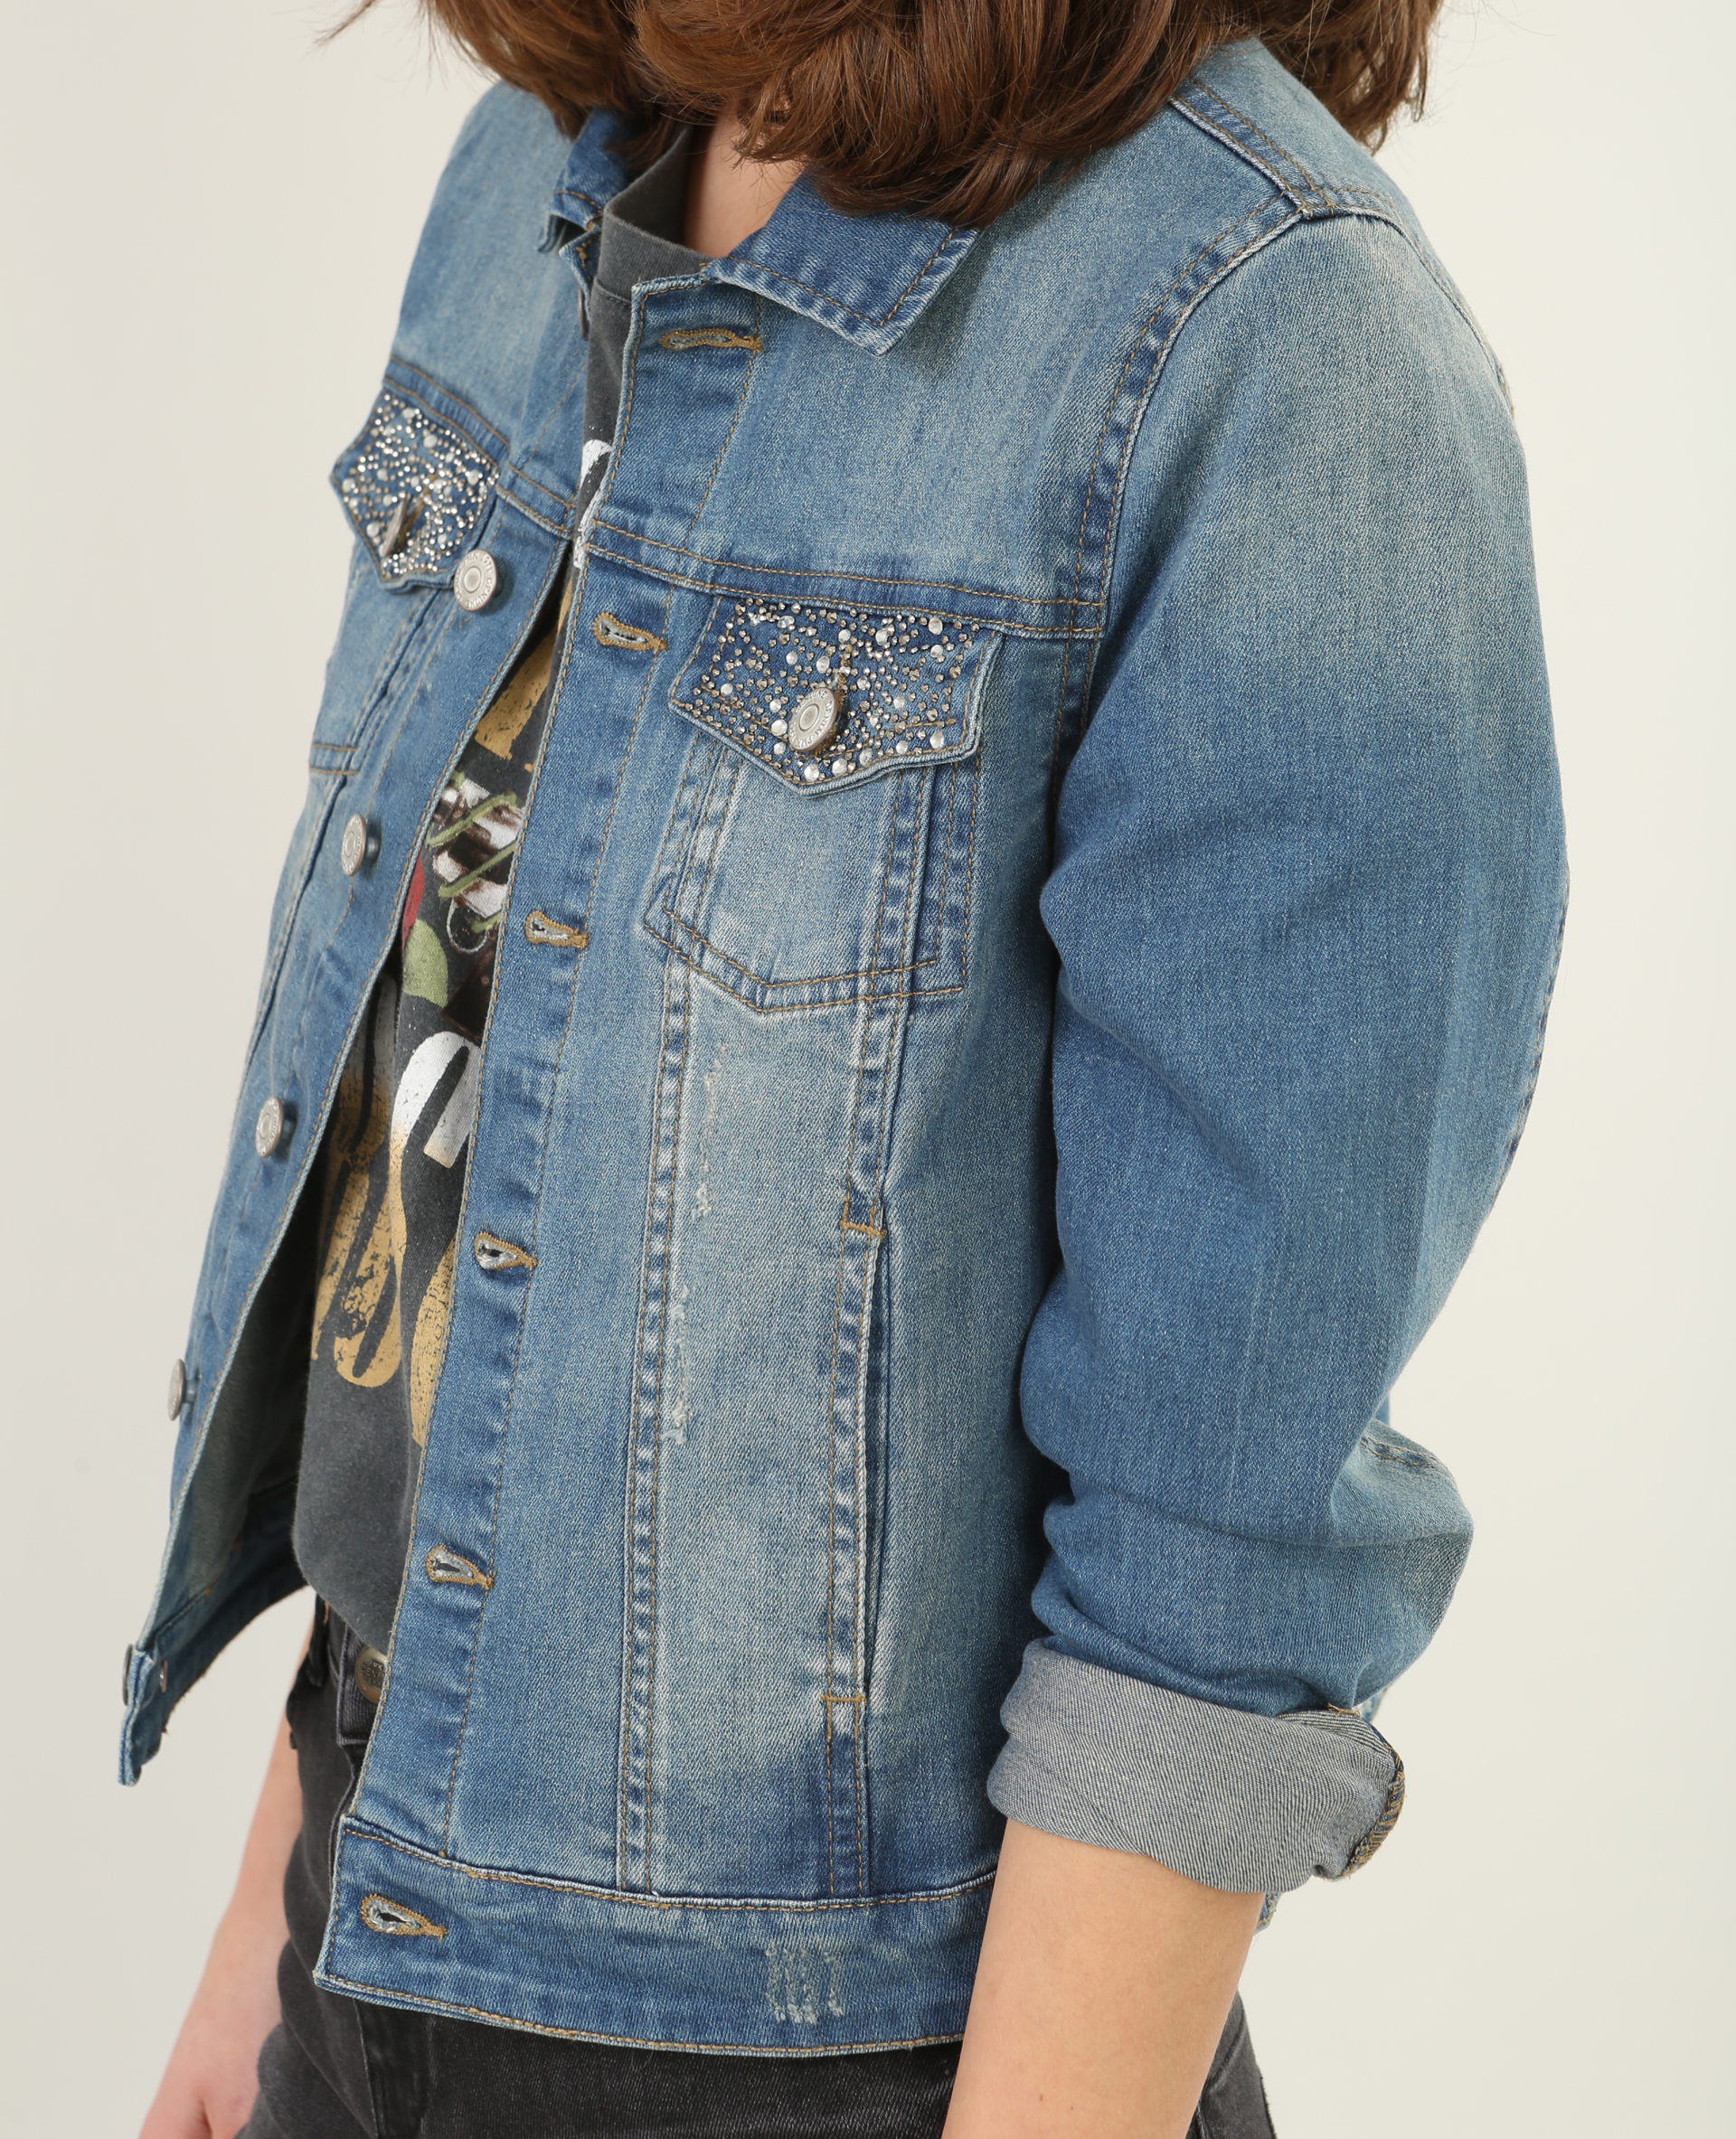 new product 63e38 71ec8 Giacca in jeans strass blu - 323128608A86 | Pimkie